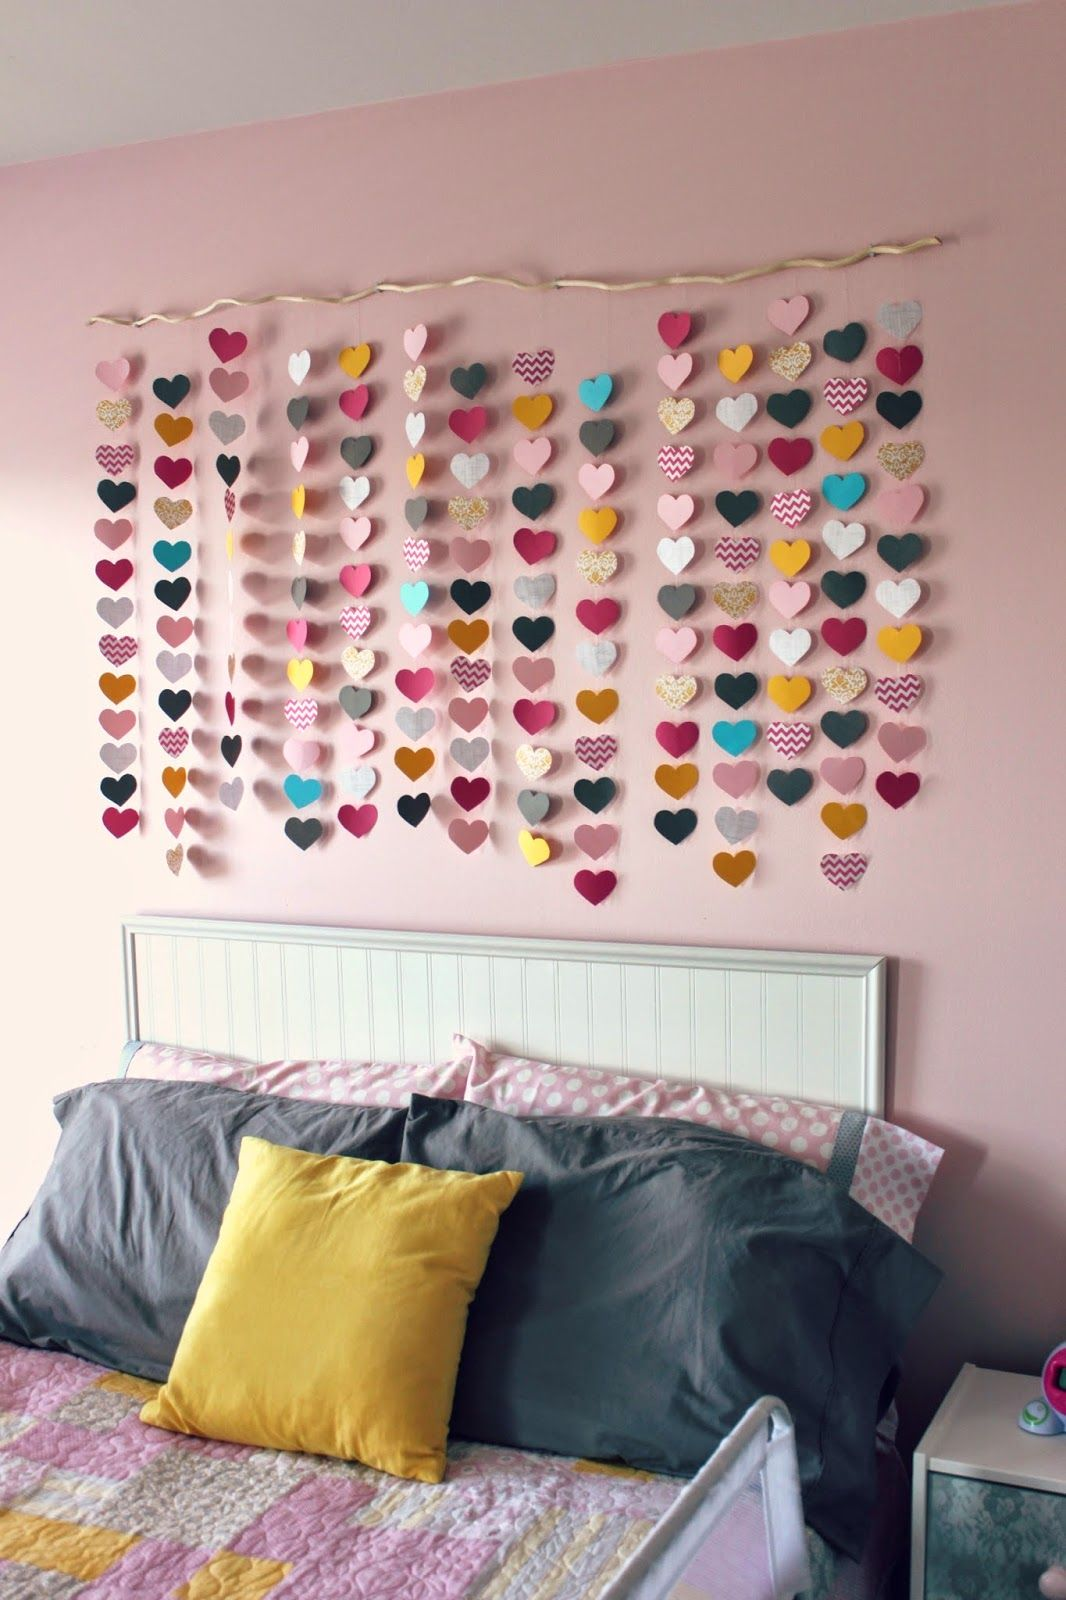 All Things Diy Room Reveal Girl 39 S Bedroom On A Budget Waterfall Of Hearts Art All Things